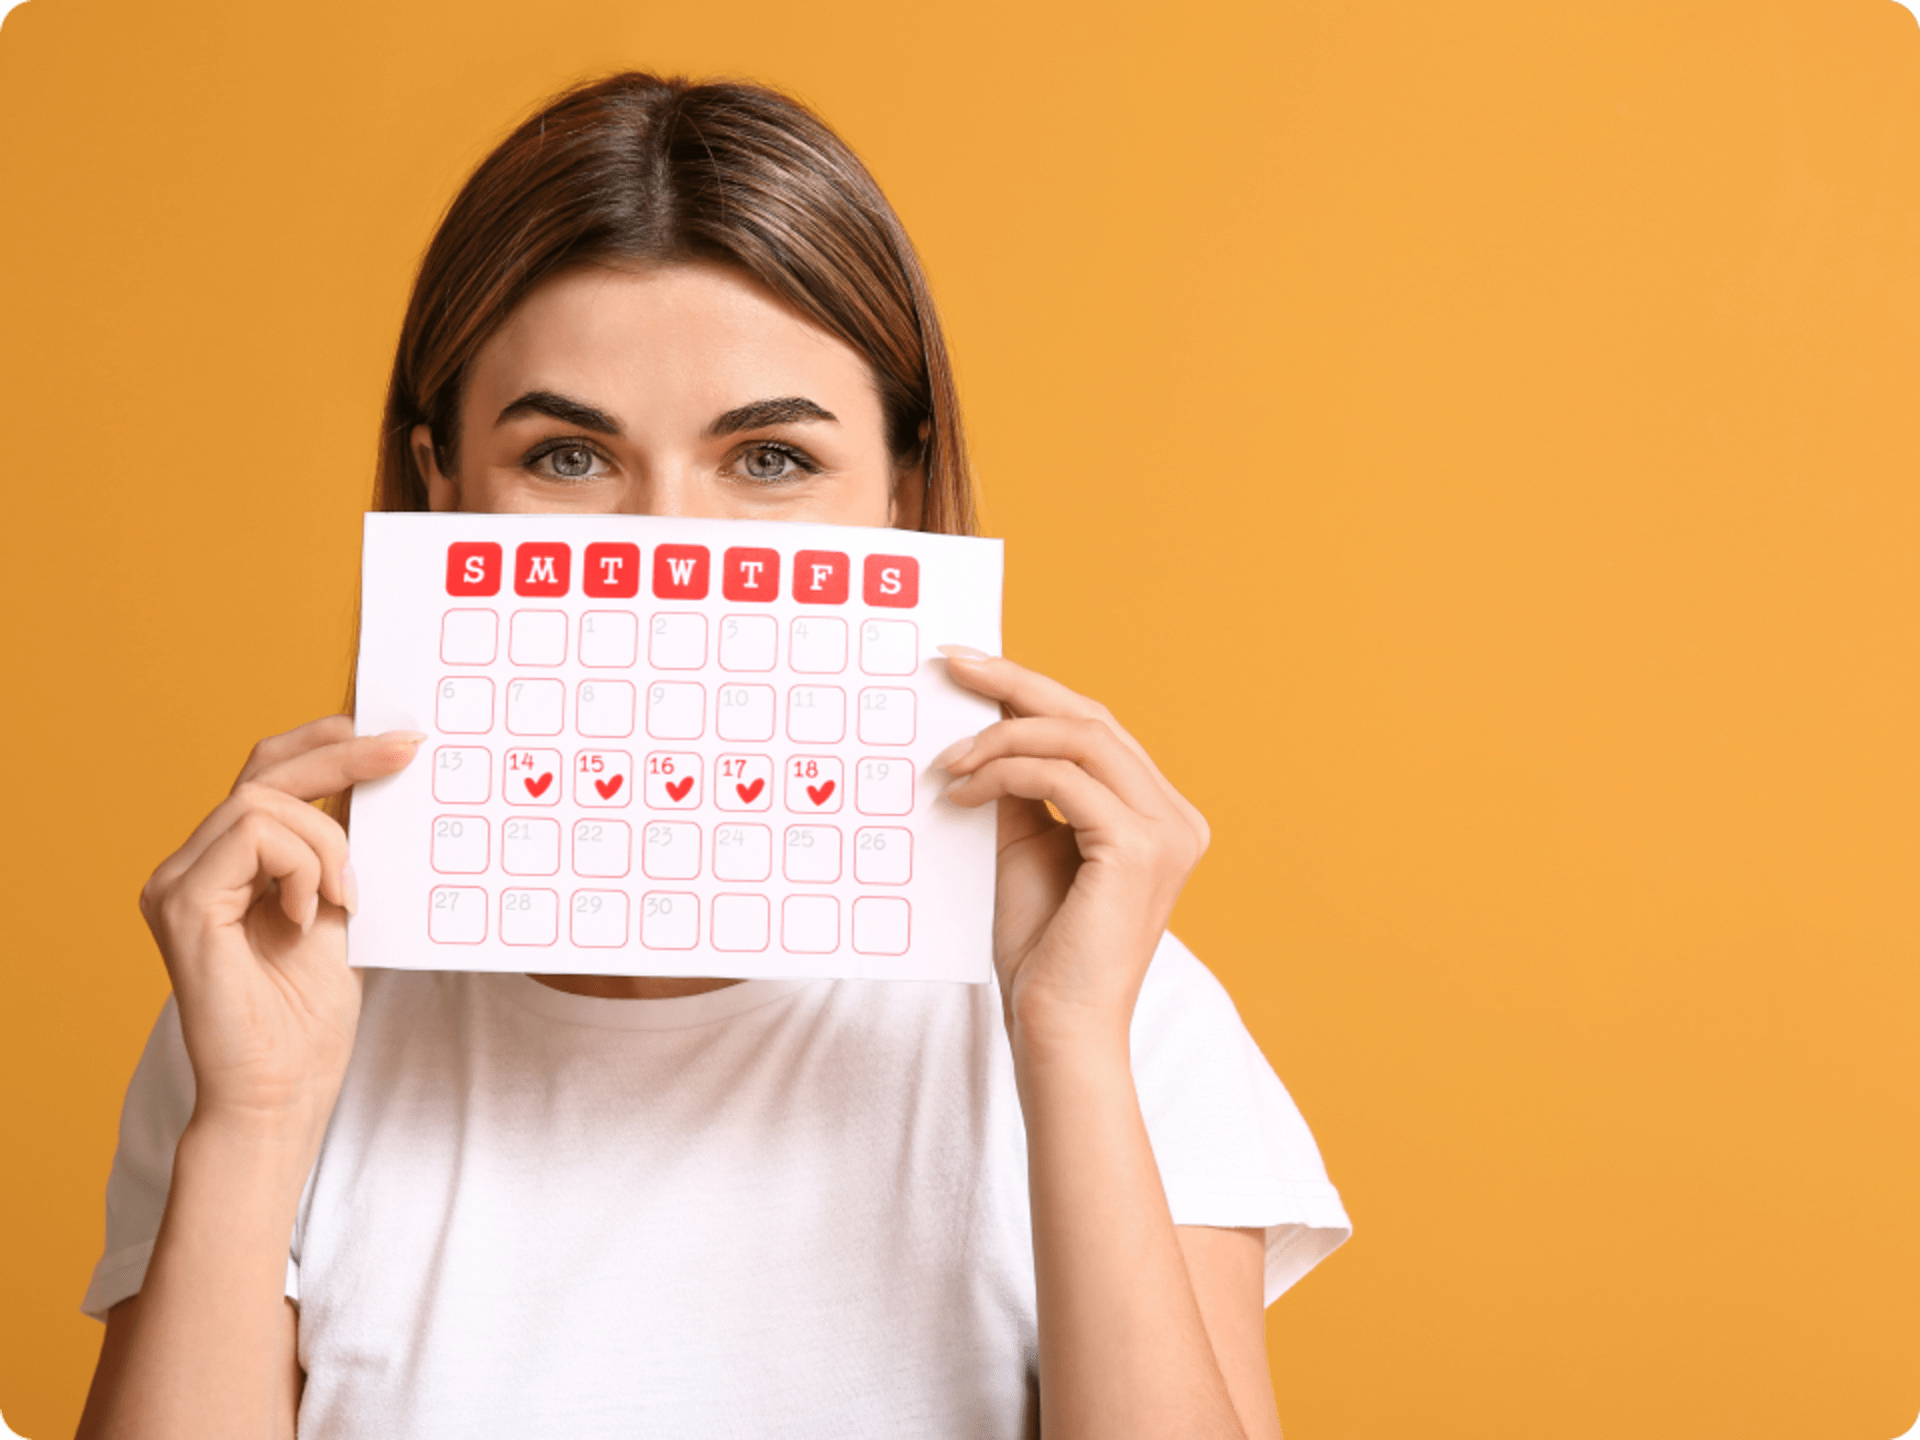 Young woman with menstrual calendar